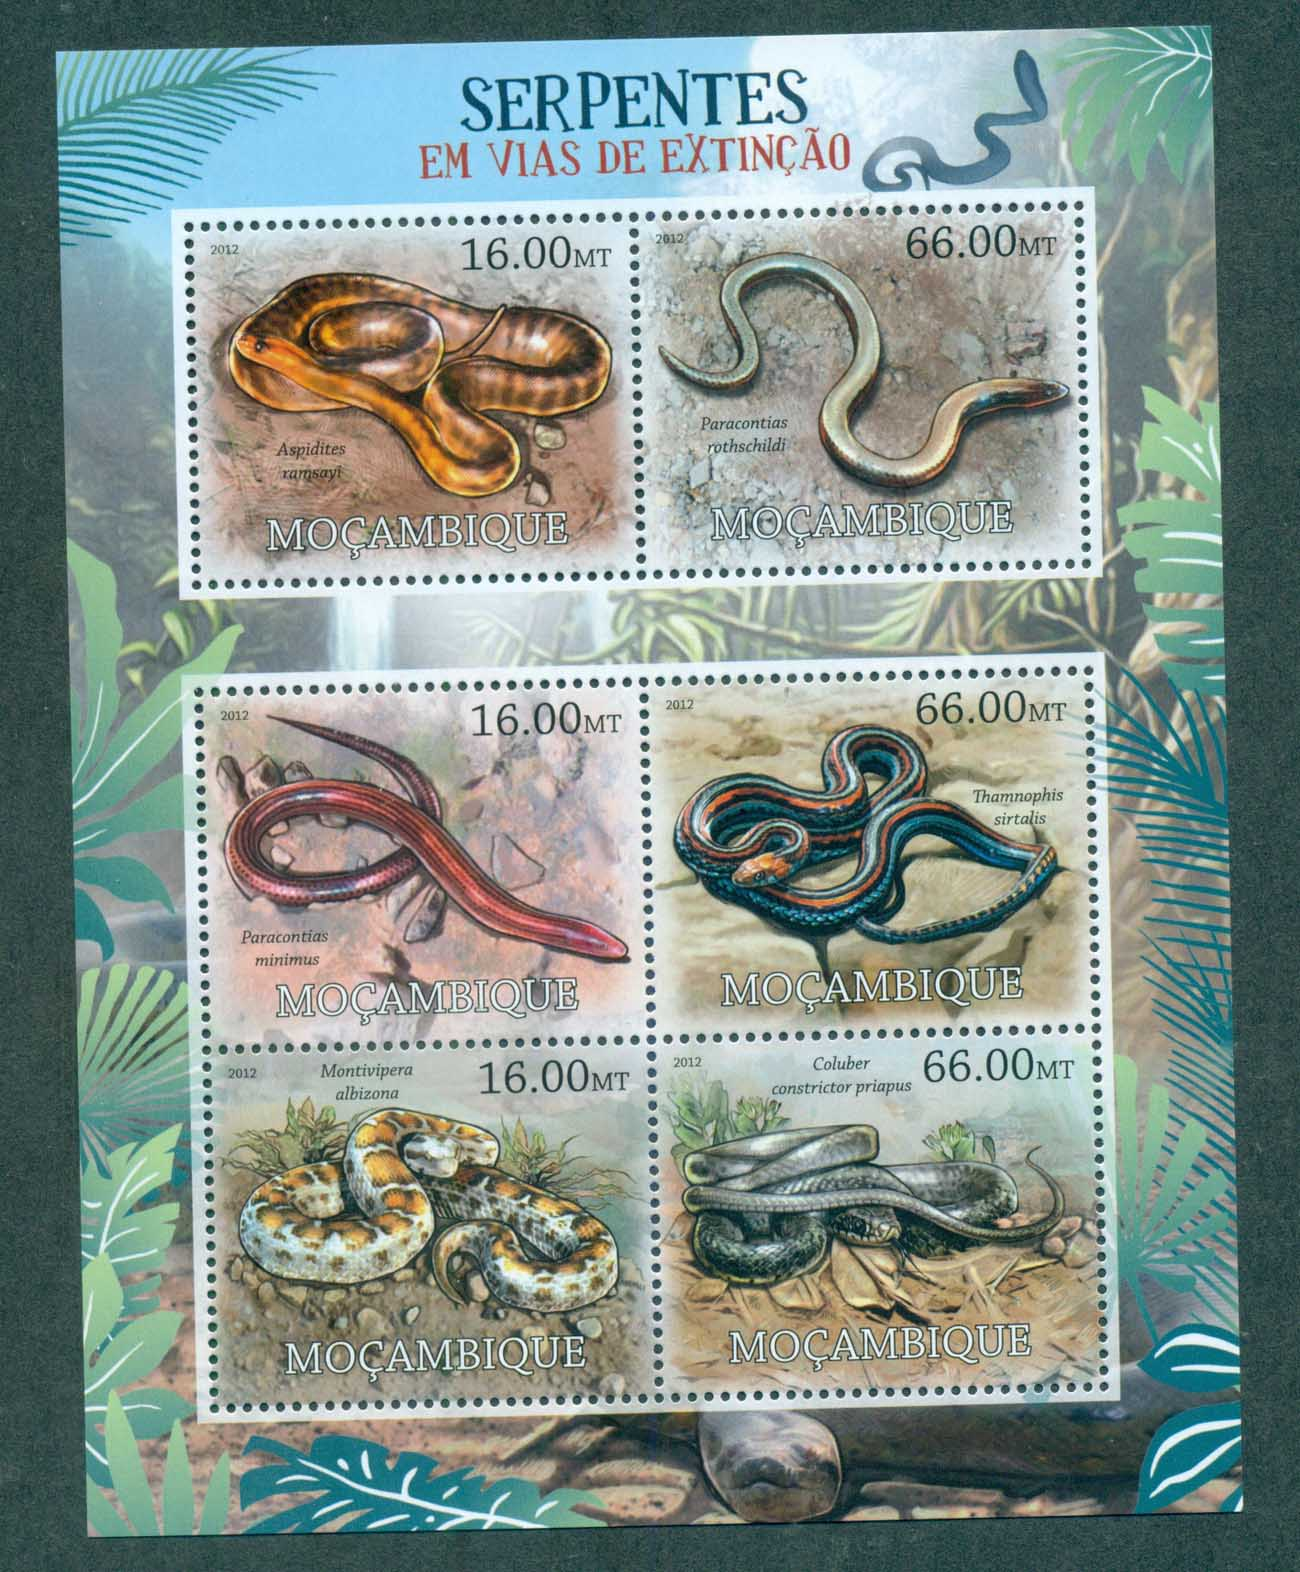 Mozambique 2012 Reptiles, Snakes MS MUH MOZ12215a